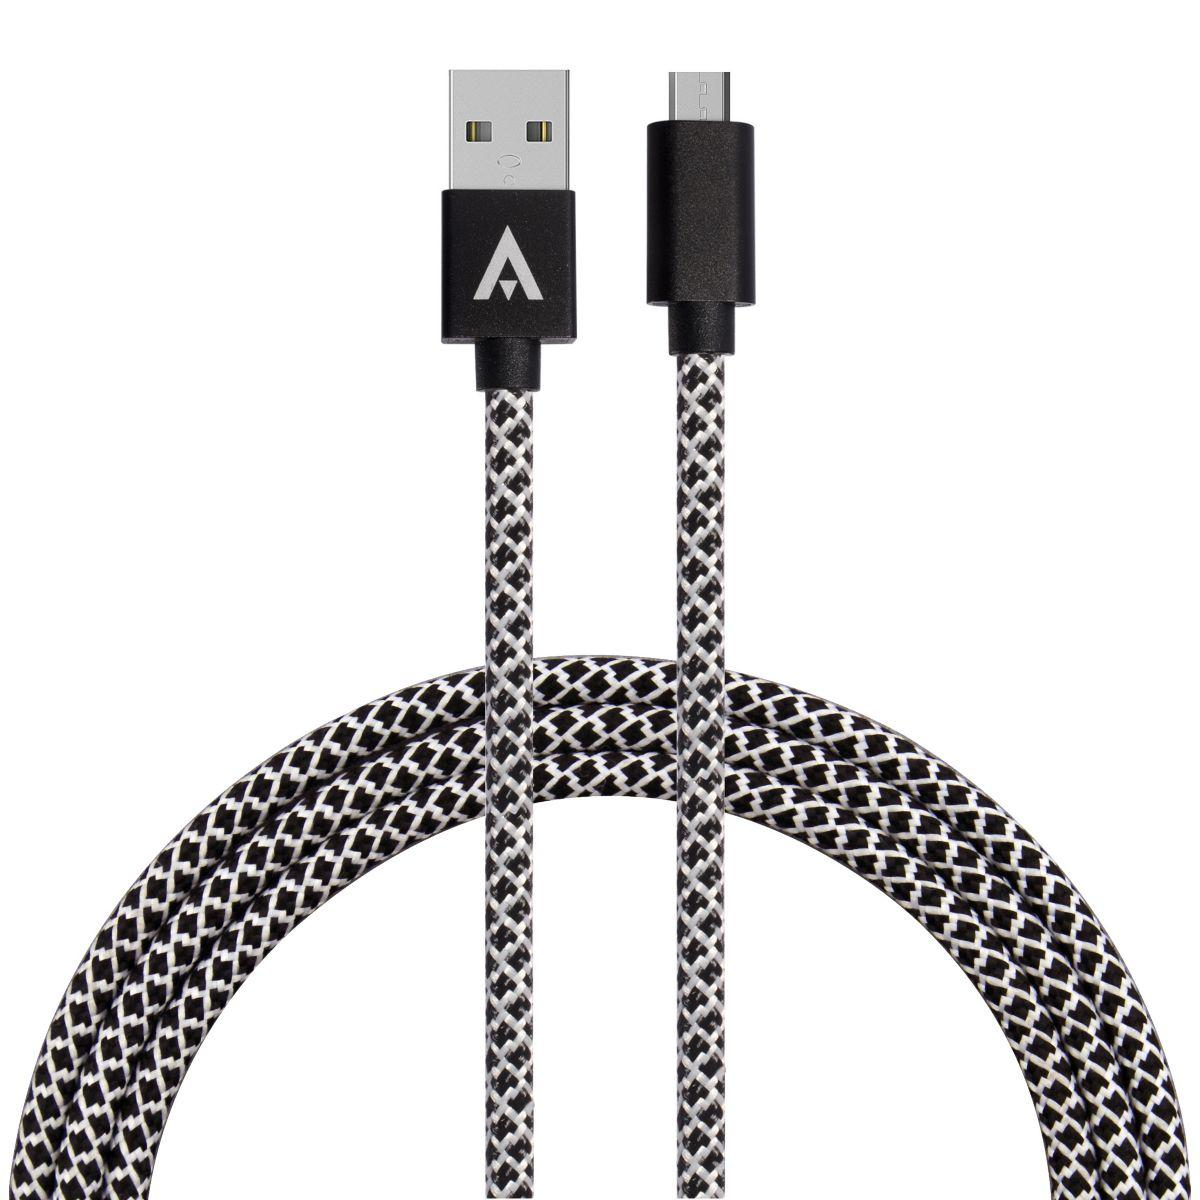 Câble micro usb adeqwat 2m noir/blanc (photo)